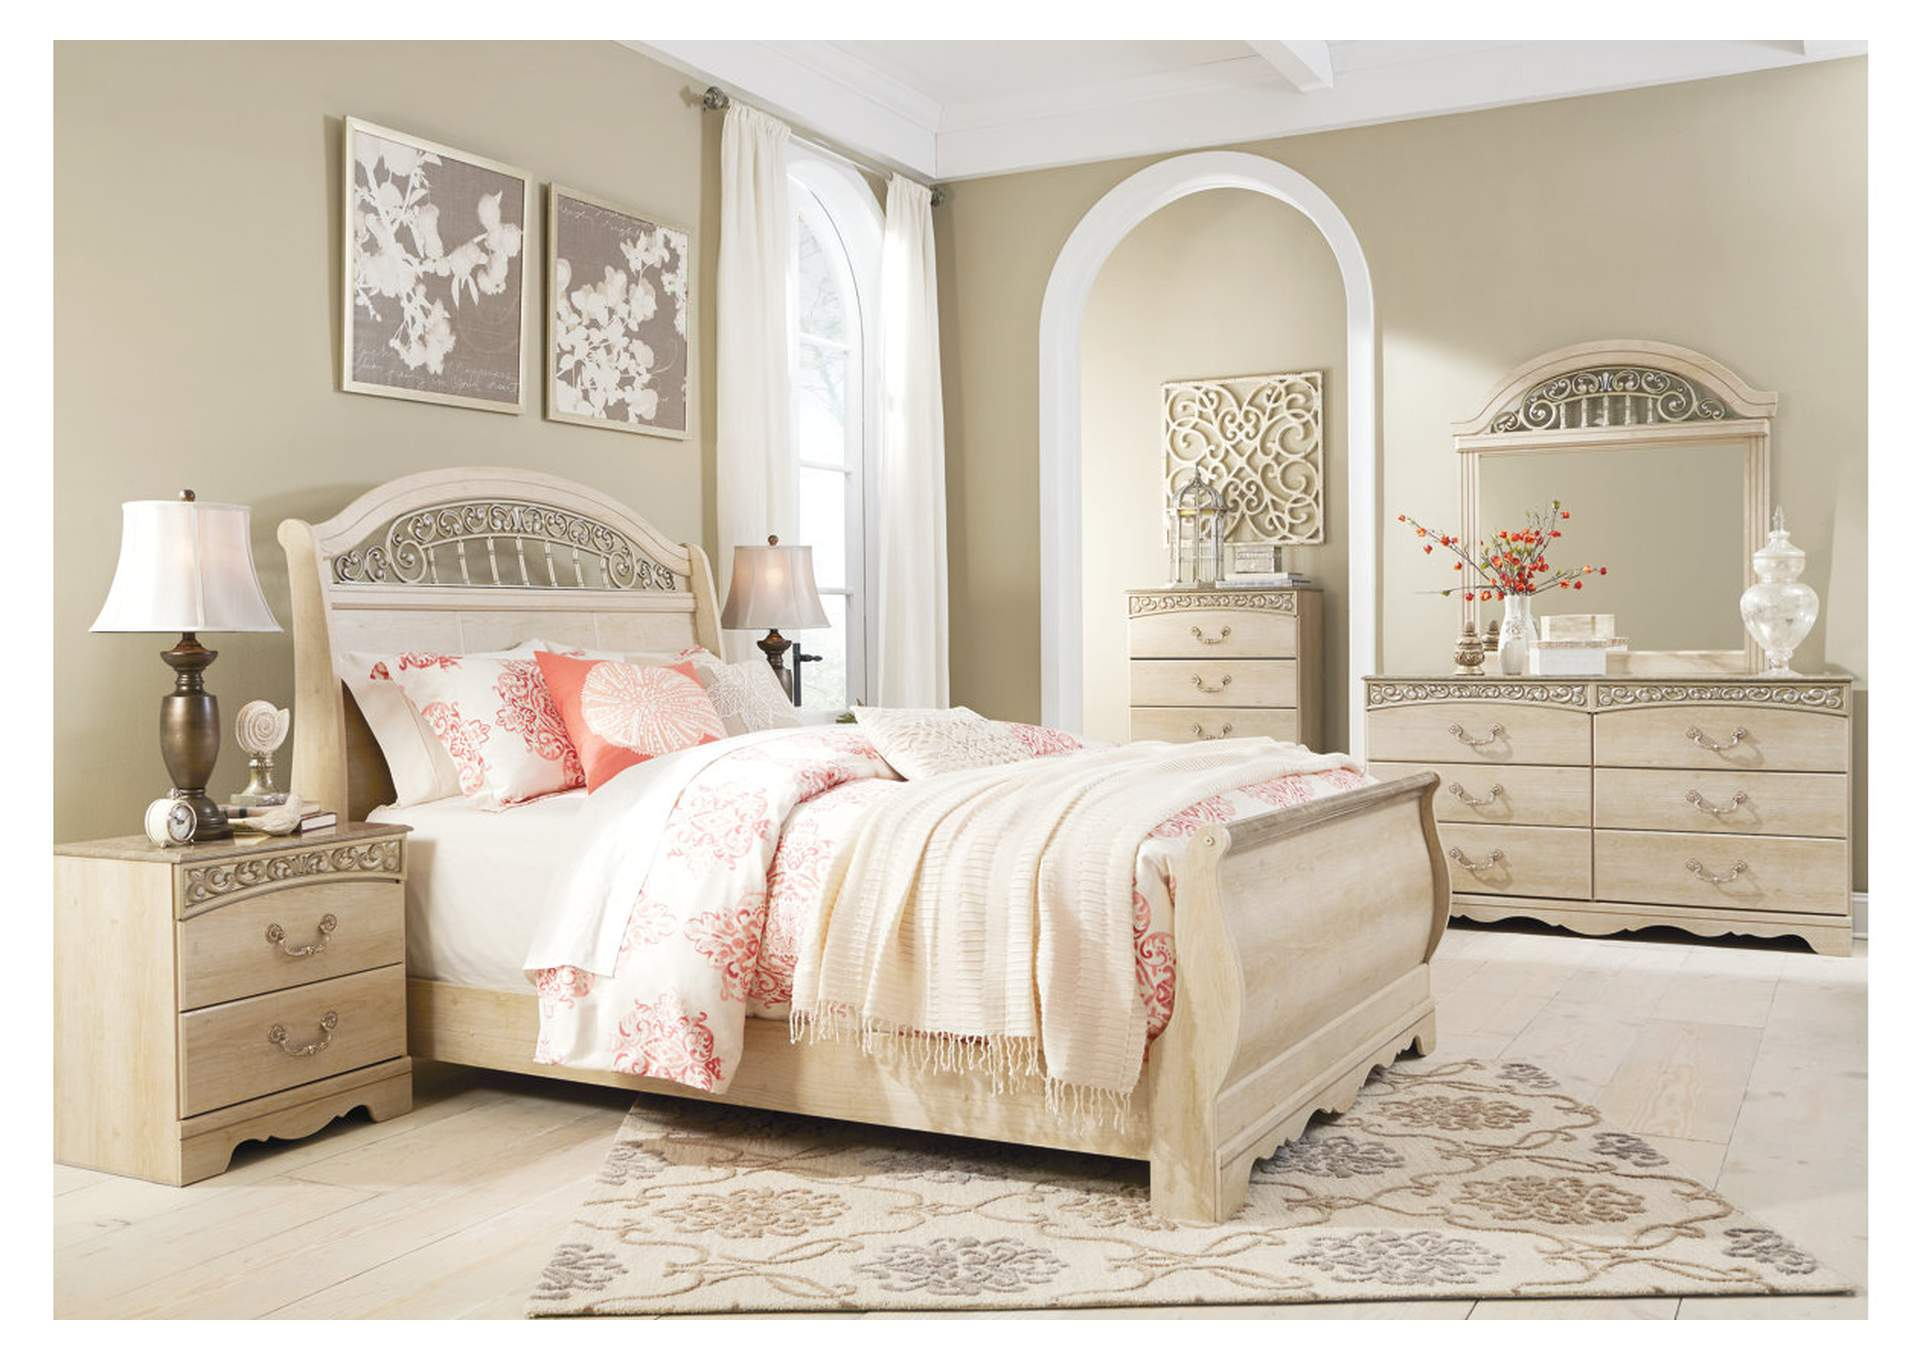 Catalina Antique White Queen Sleigh Bed w/Dresser, Mirror & Drawer Chest,Signature Design by Ashley